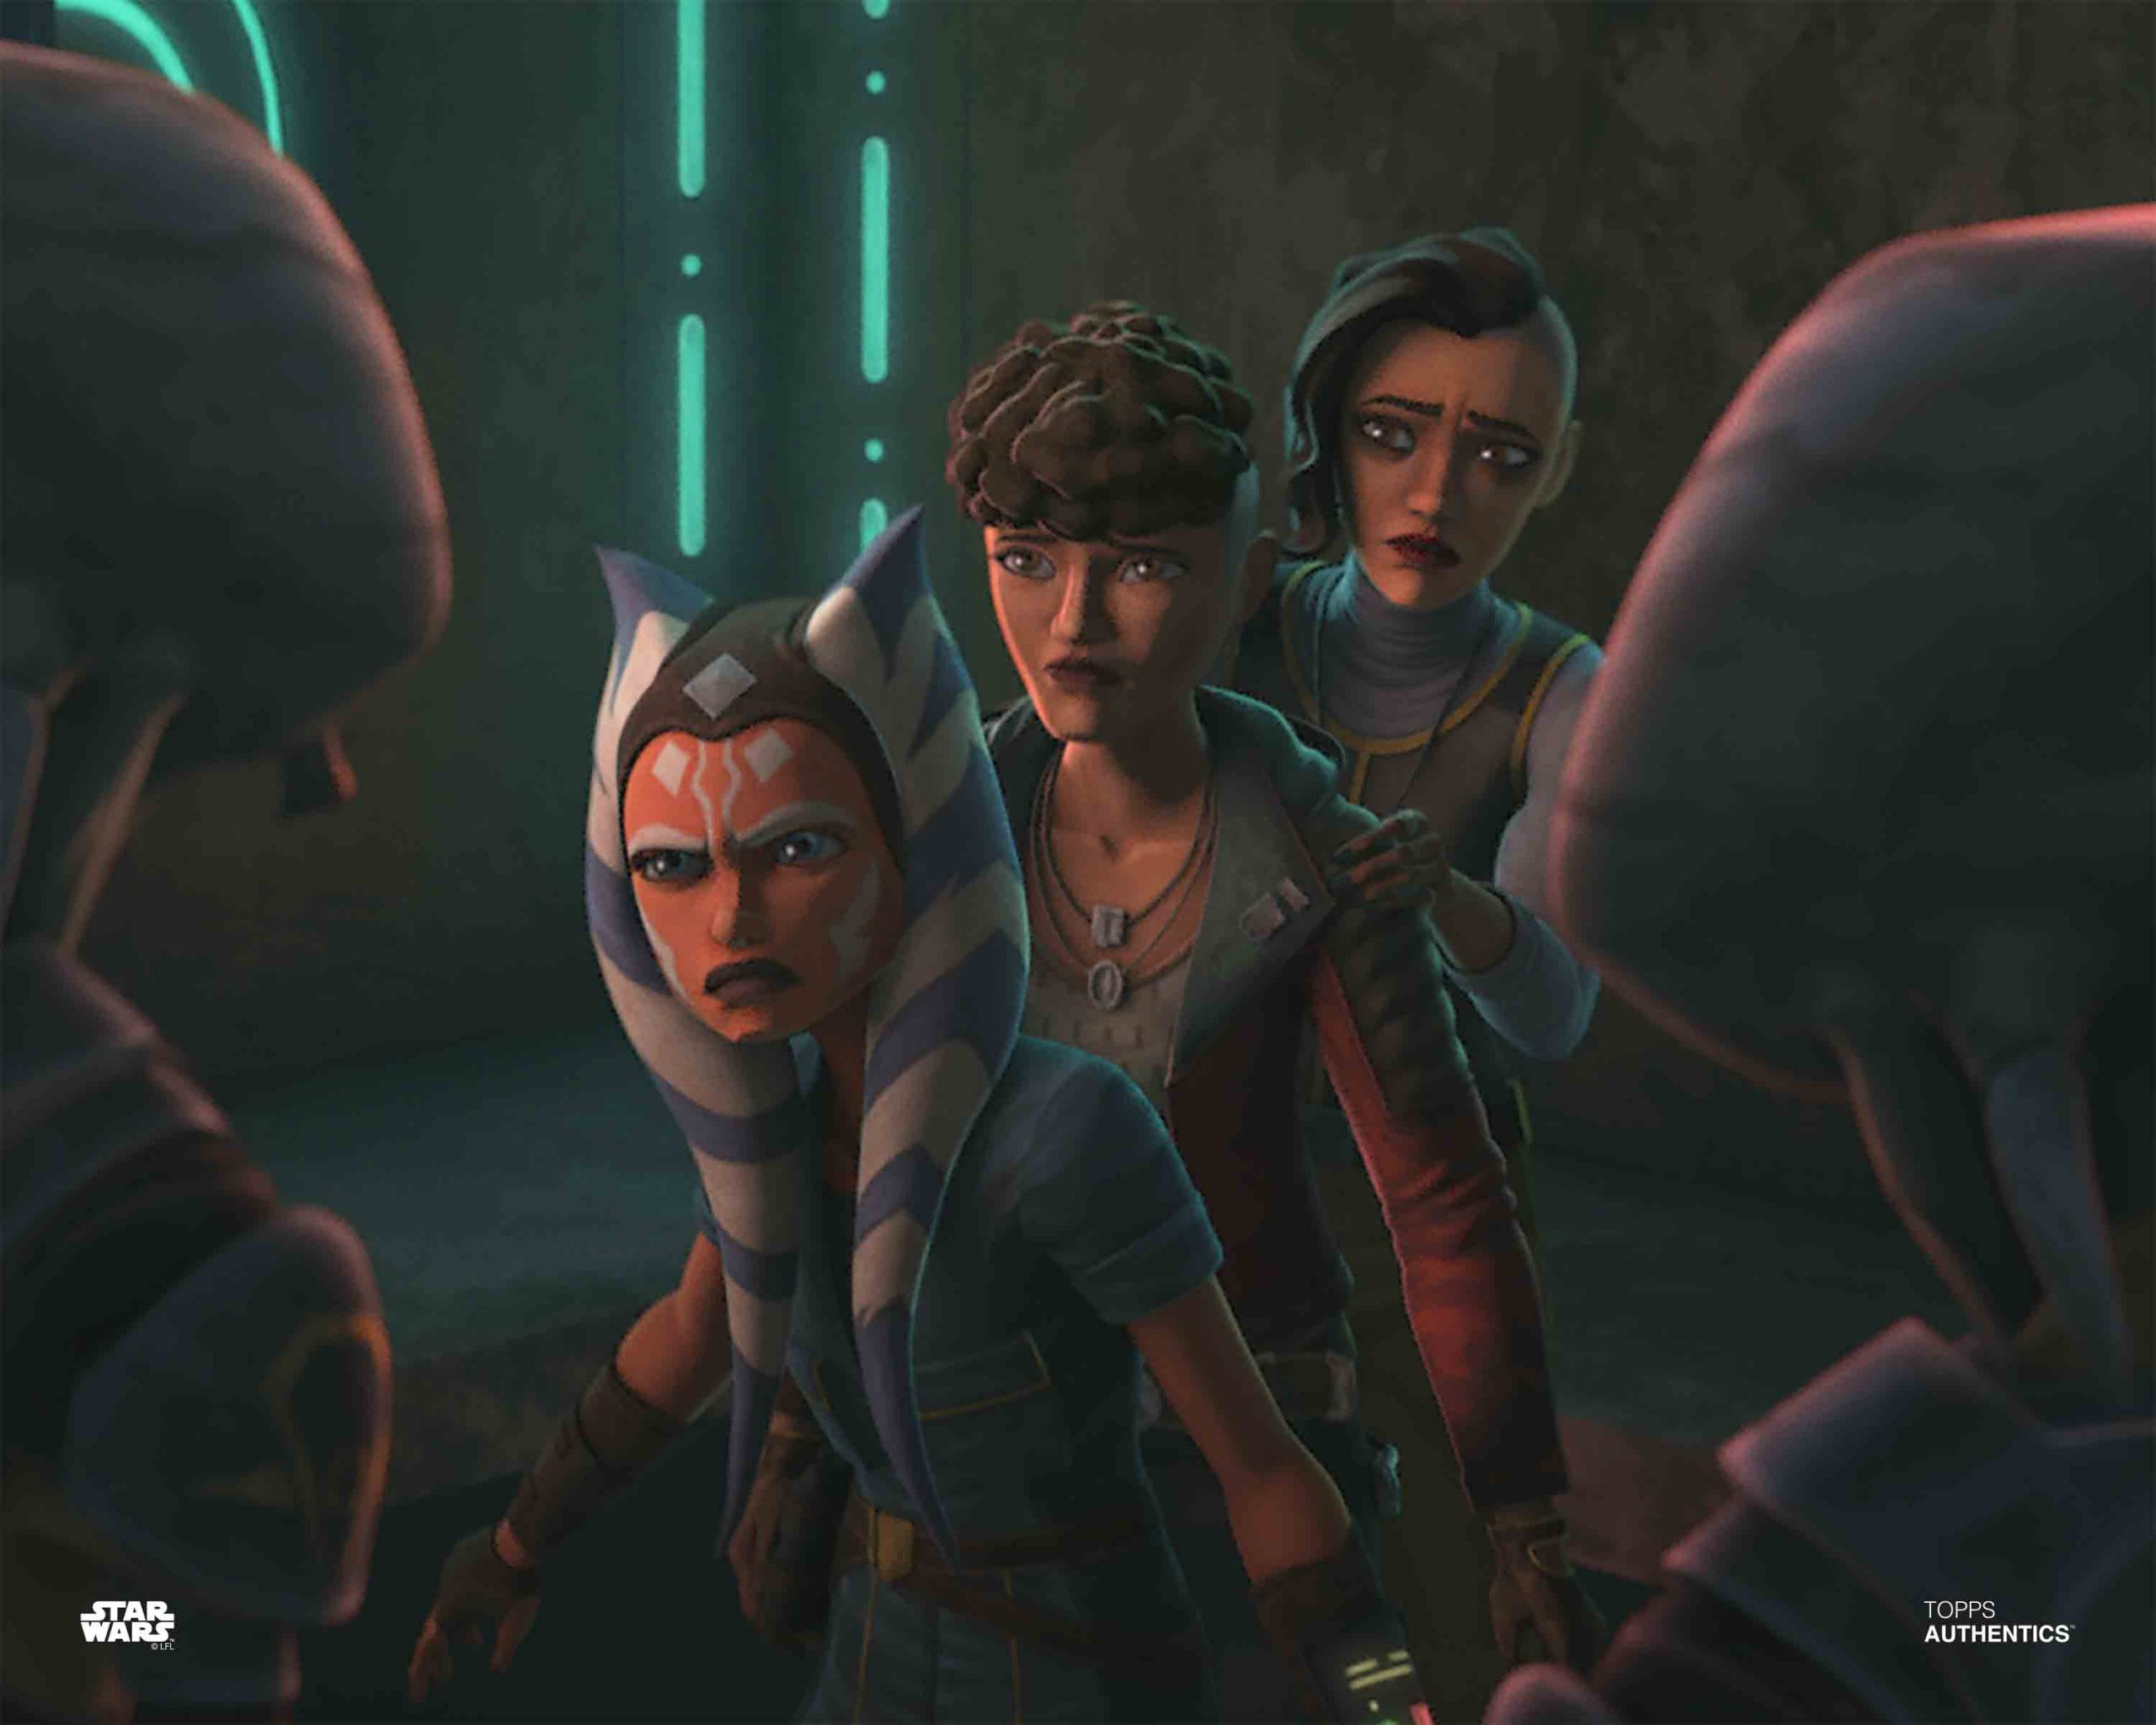 The Clone Wars Season 7 Episode 7 Photos At Star Wars Authentics Yodasnews Com A Daily Stop For All Star Wars News